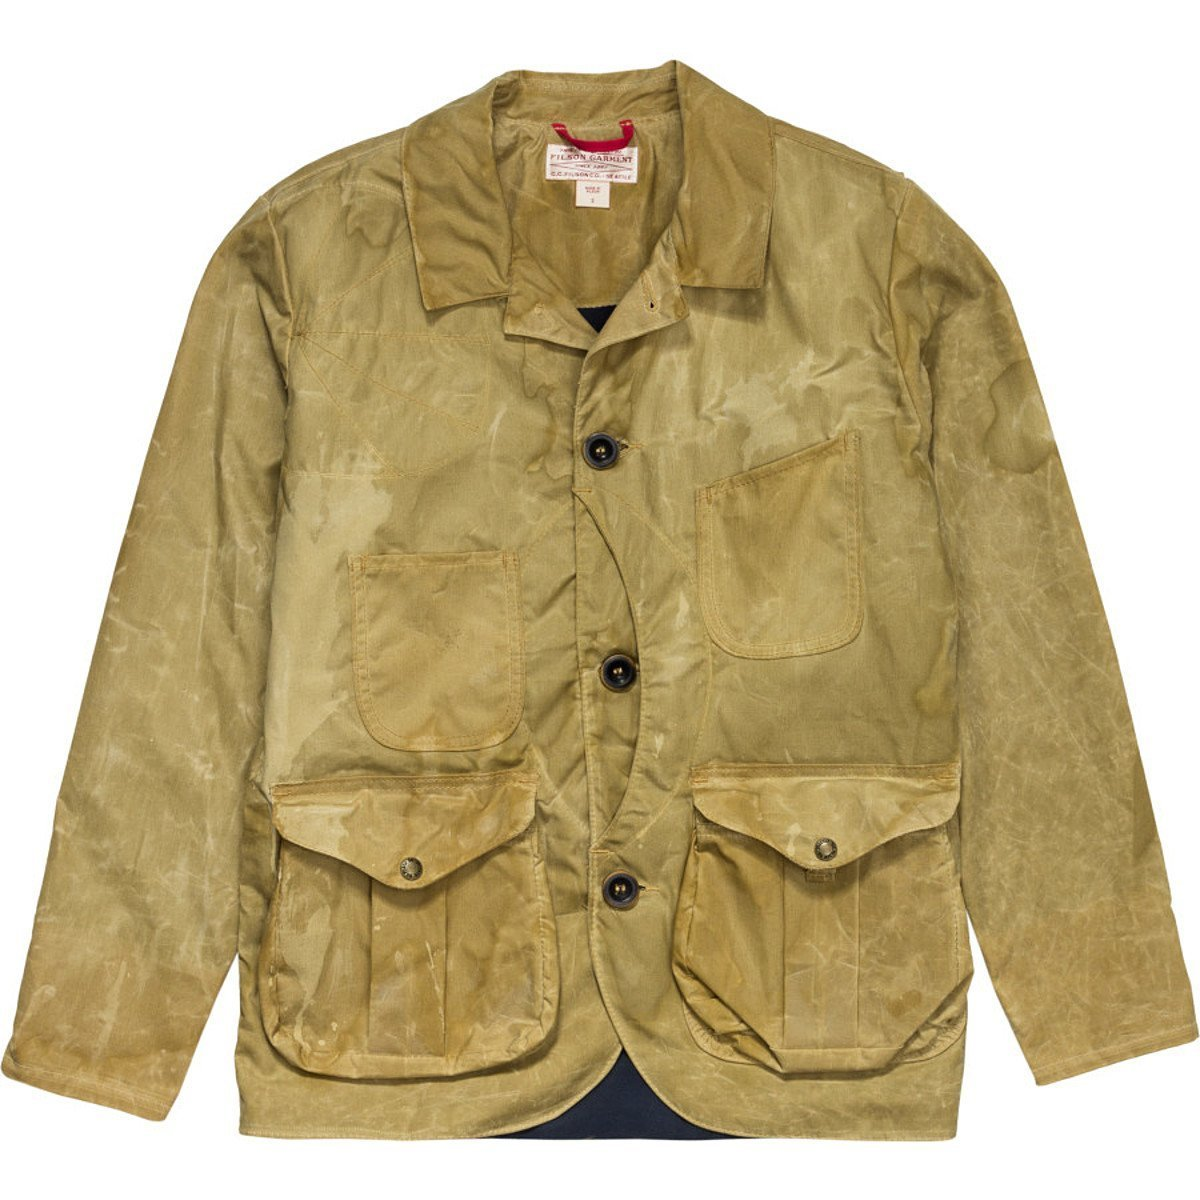 Filson 10415 Soy Wax Guide Work Jacket (X-Large, Tan)